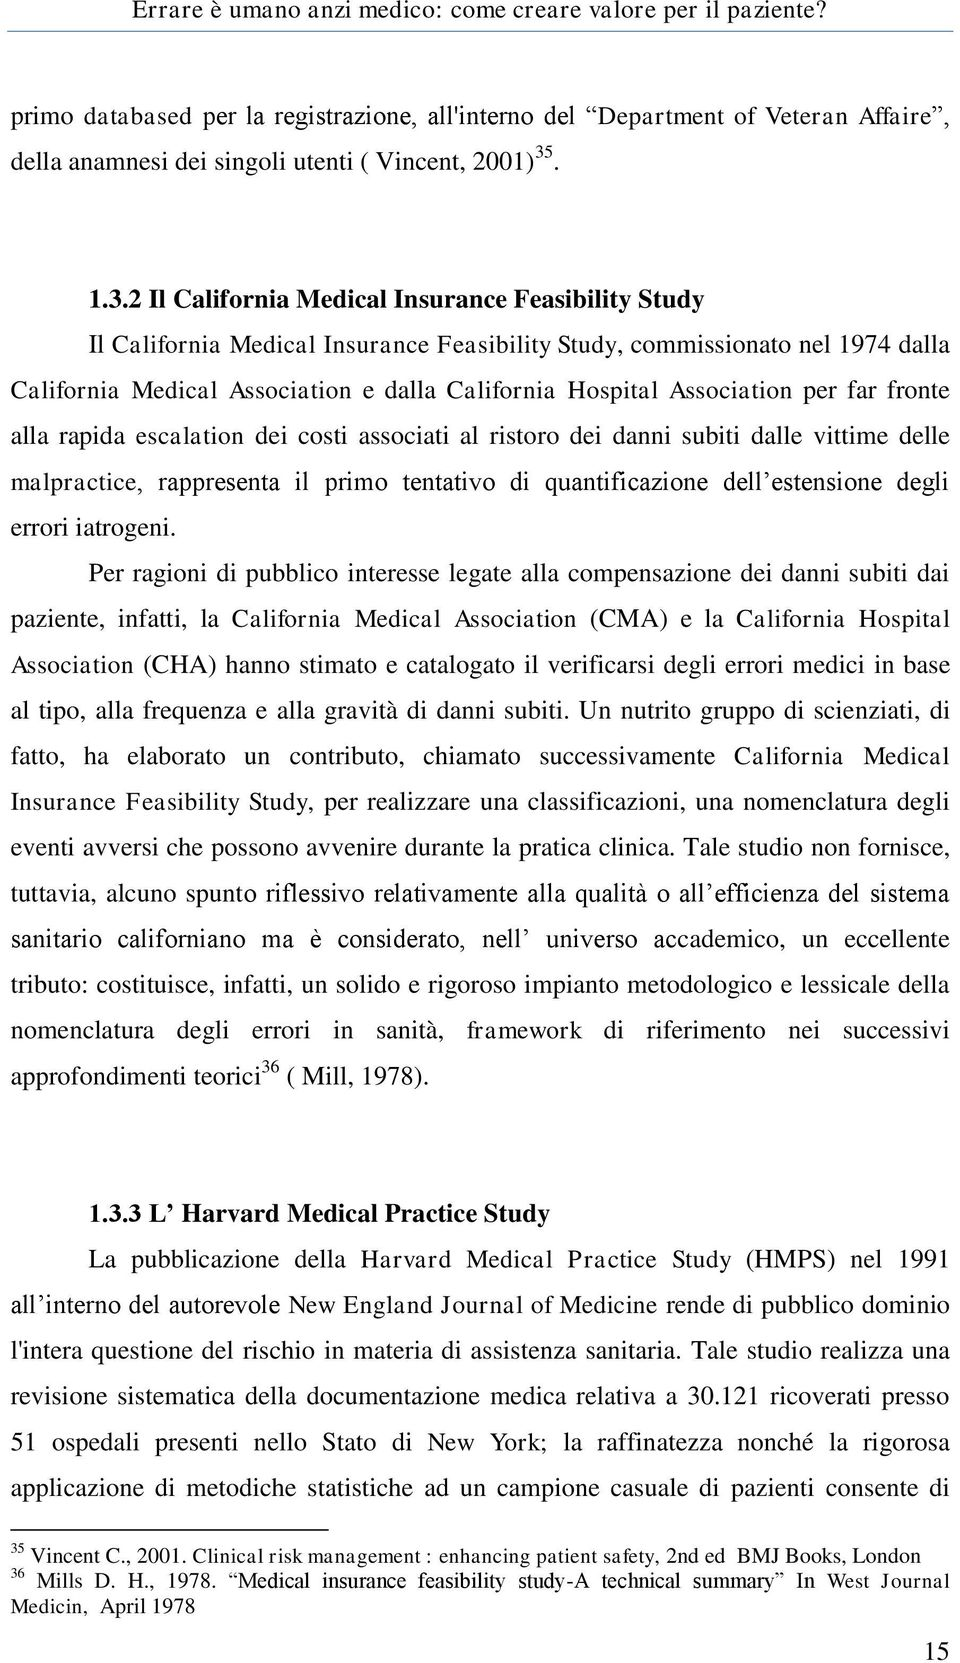 2 Il California Medical Insurance Feasibility Study Il California Medical Insurance Feasibility Study, commissionato nel 1974 dalla California Medical Association e dalla California Hospital